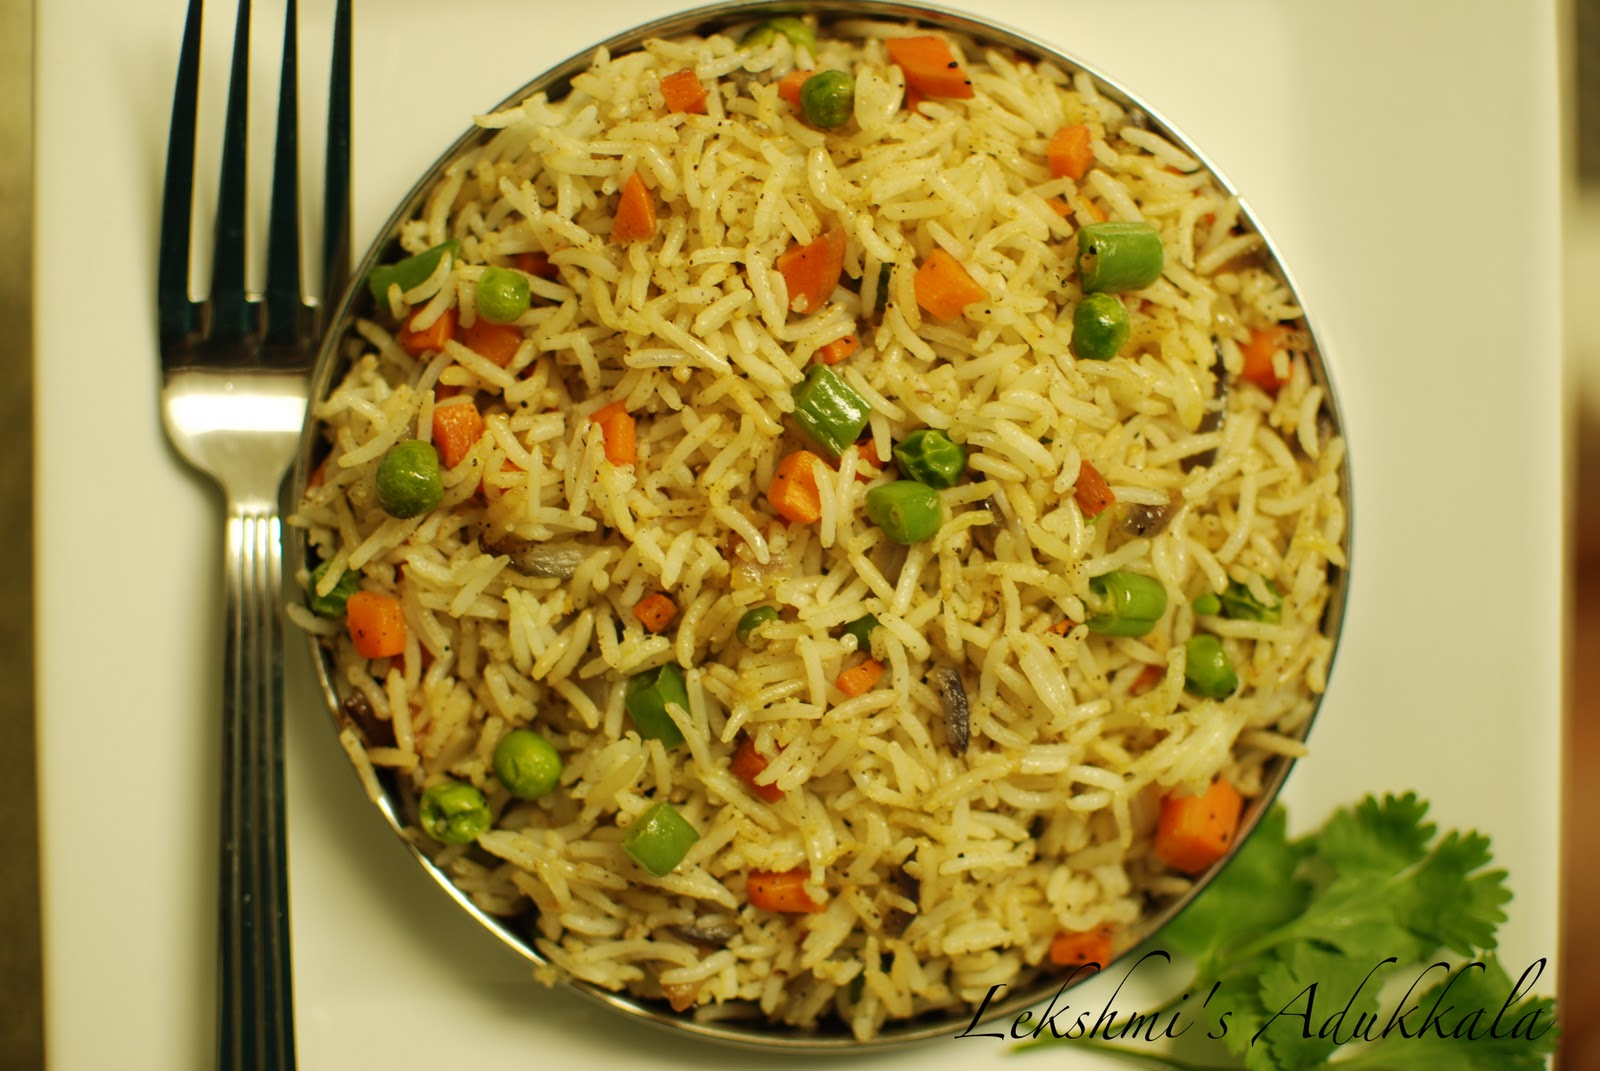 Lekshmi's Adukkala: Vegetable Fried Rice